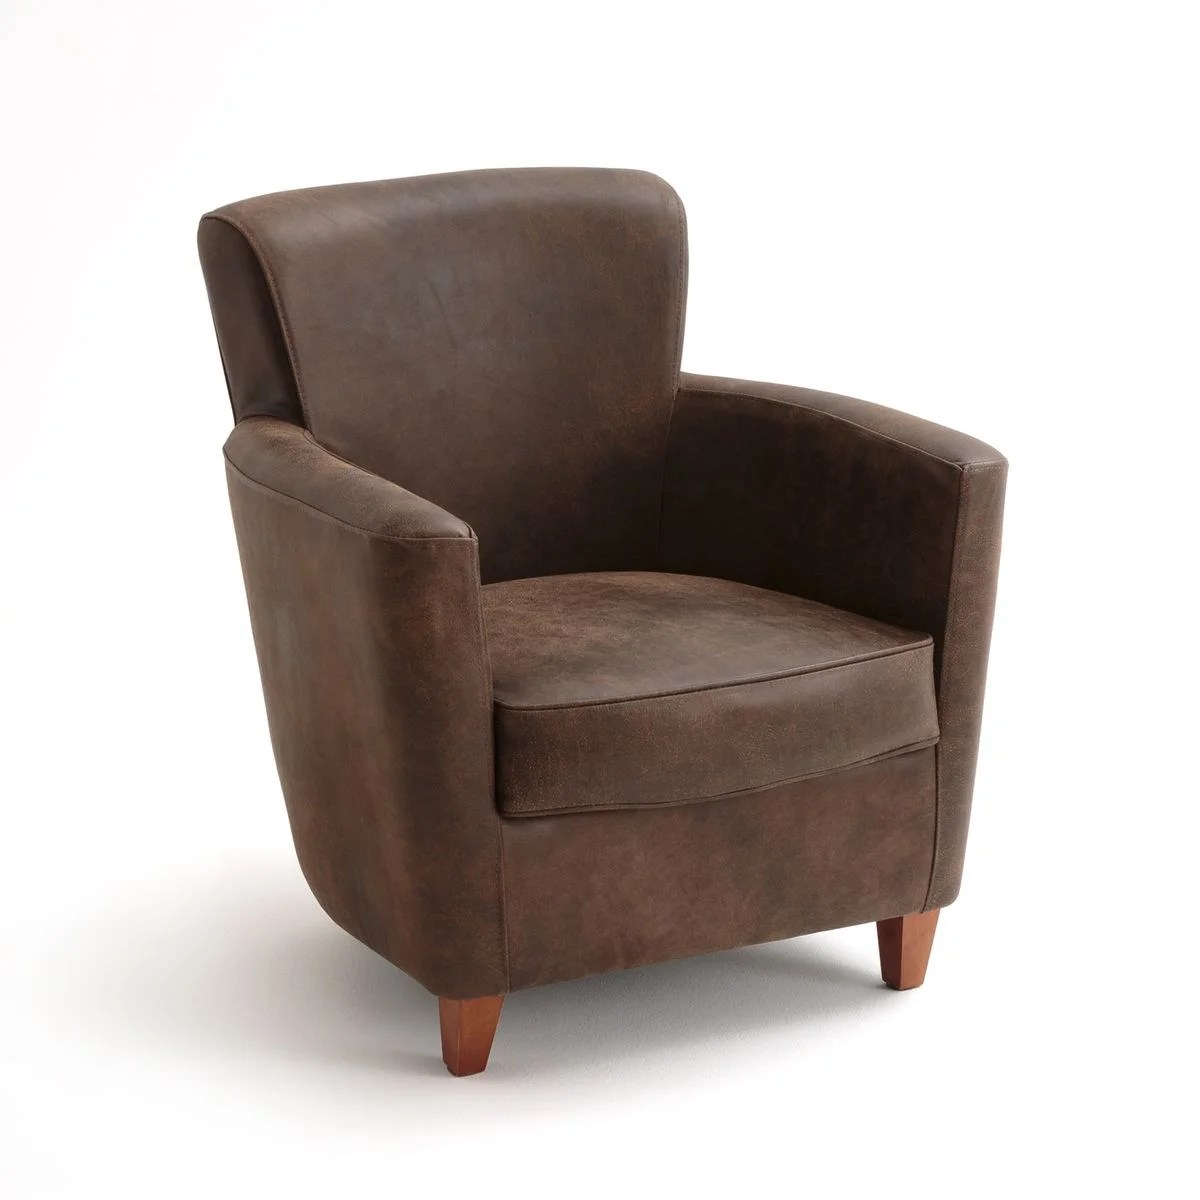 Fauteuils Am Pm La Redoute Fauteuil Club Cuir, Mathesson Marron Am.pm | La Redoute